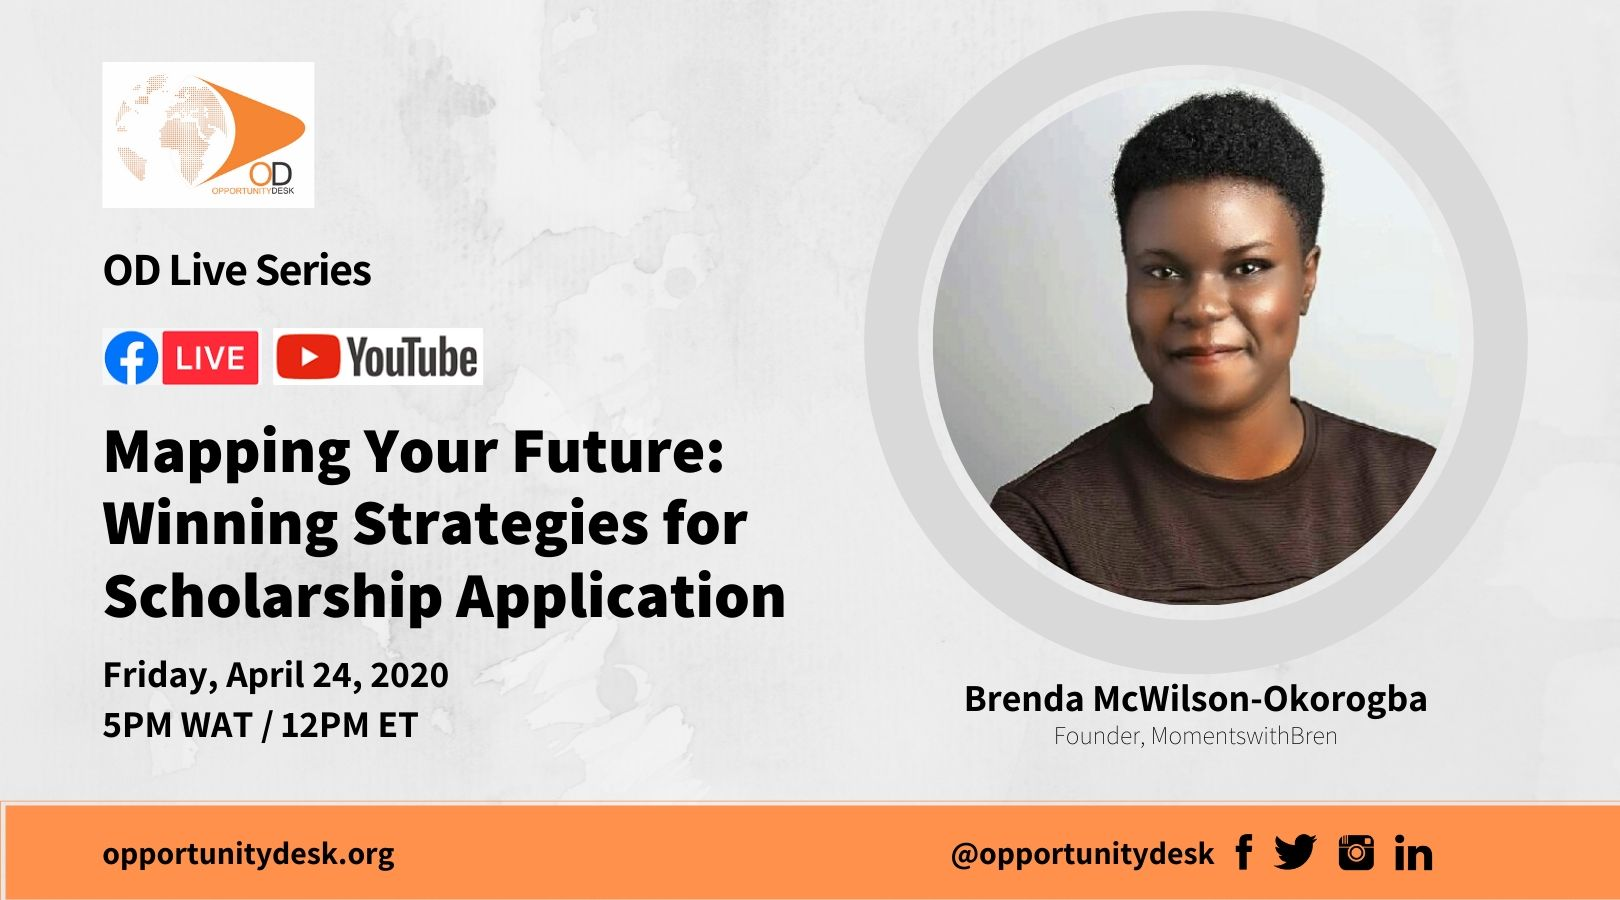 OD Live with Brenda McWilson-Okorogba – Mapping Your Future: Winning Strategies for Scholarship Application